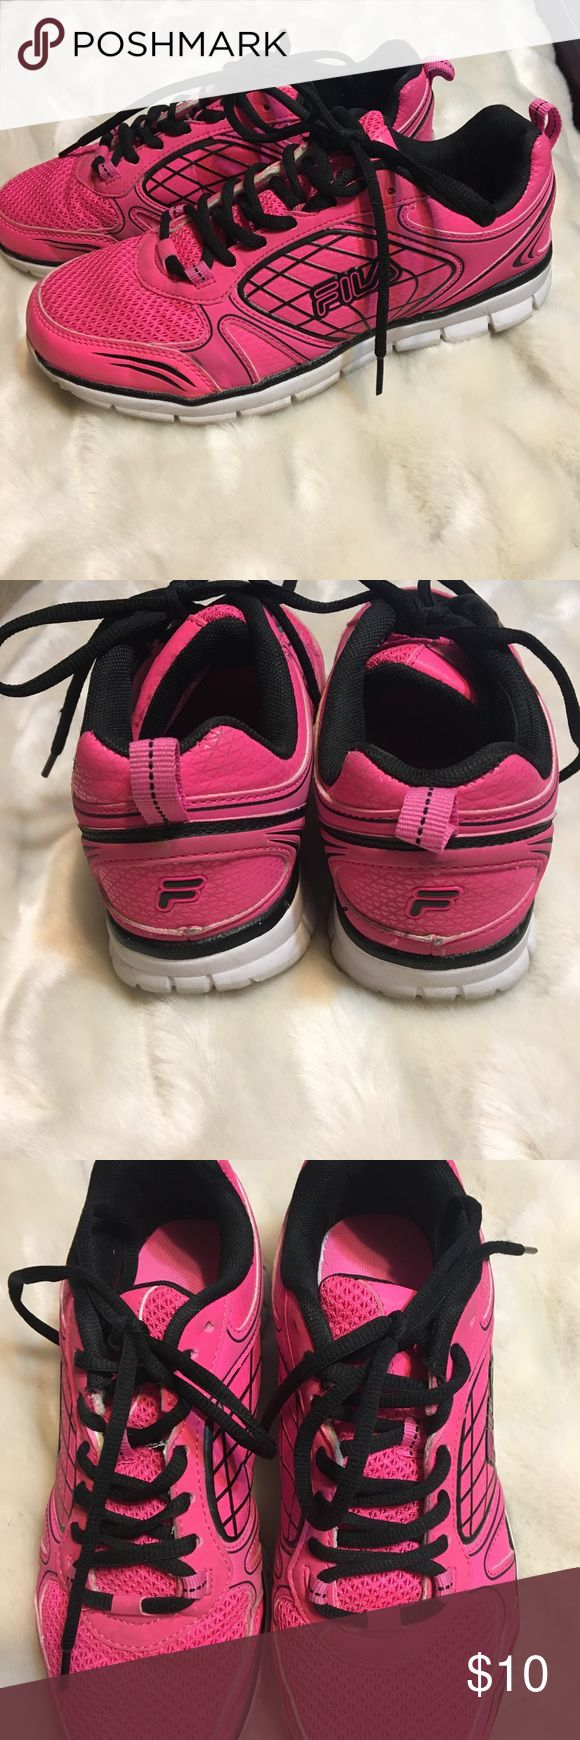 Fila running shoes In great used condition Fila Shoes Athletic Shoes